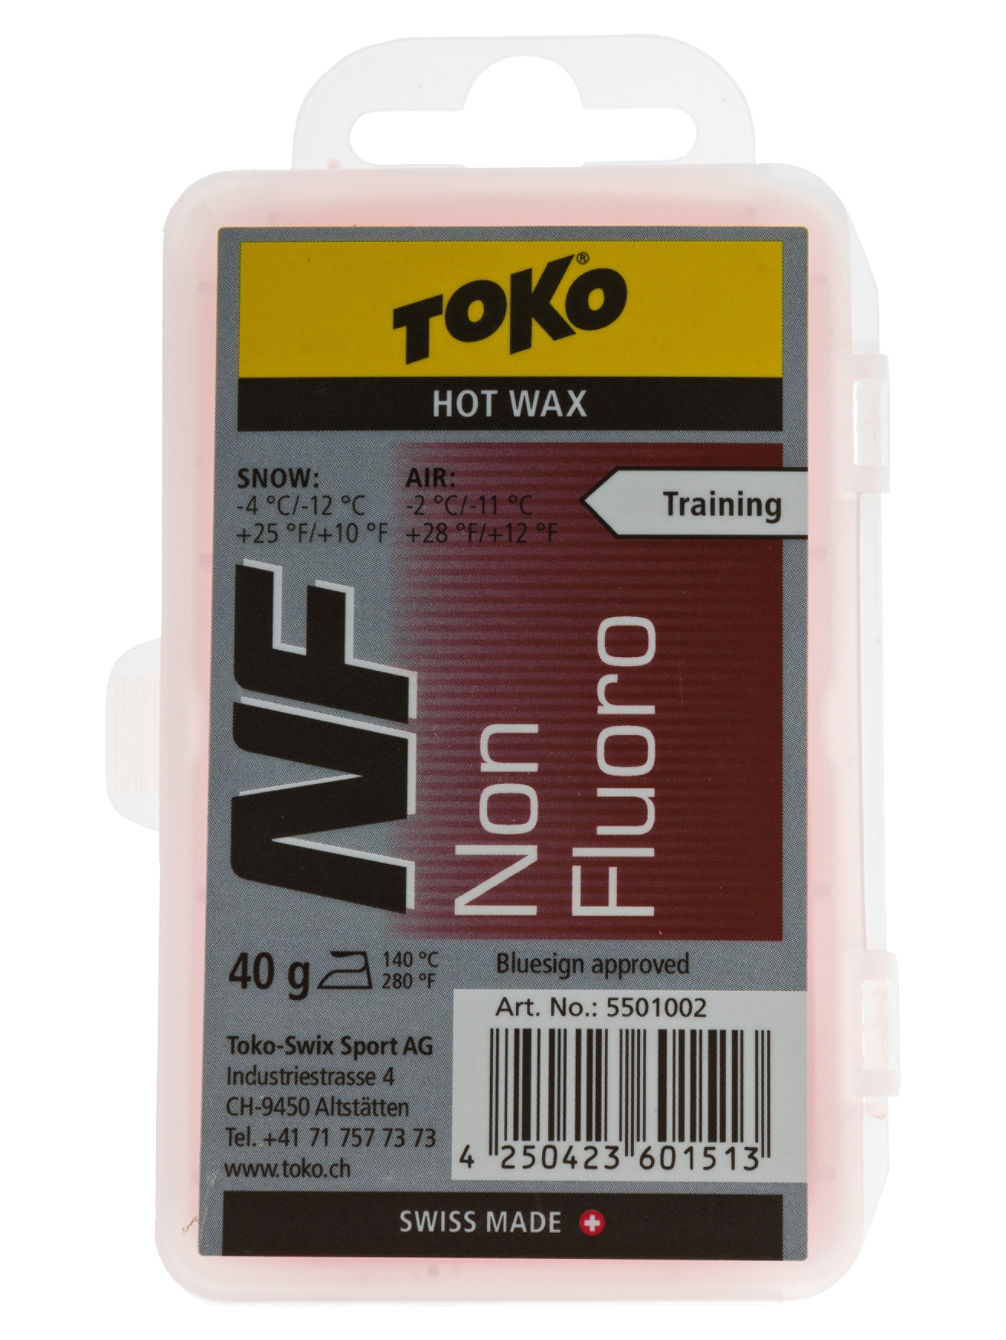 toko-nf-hot-wax-red-40g